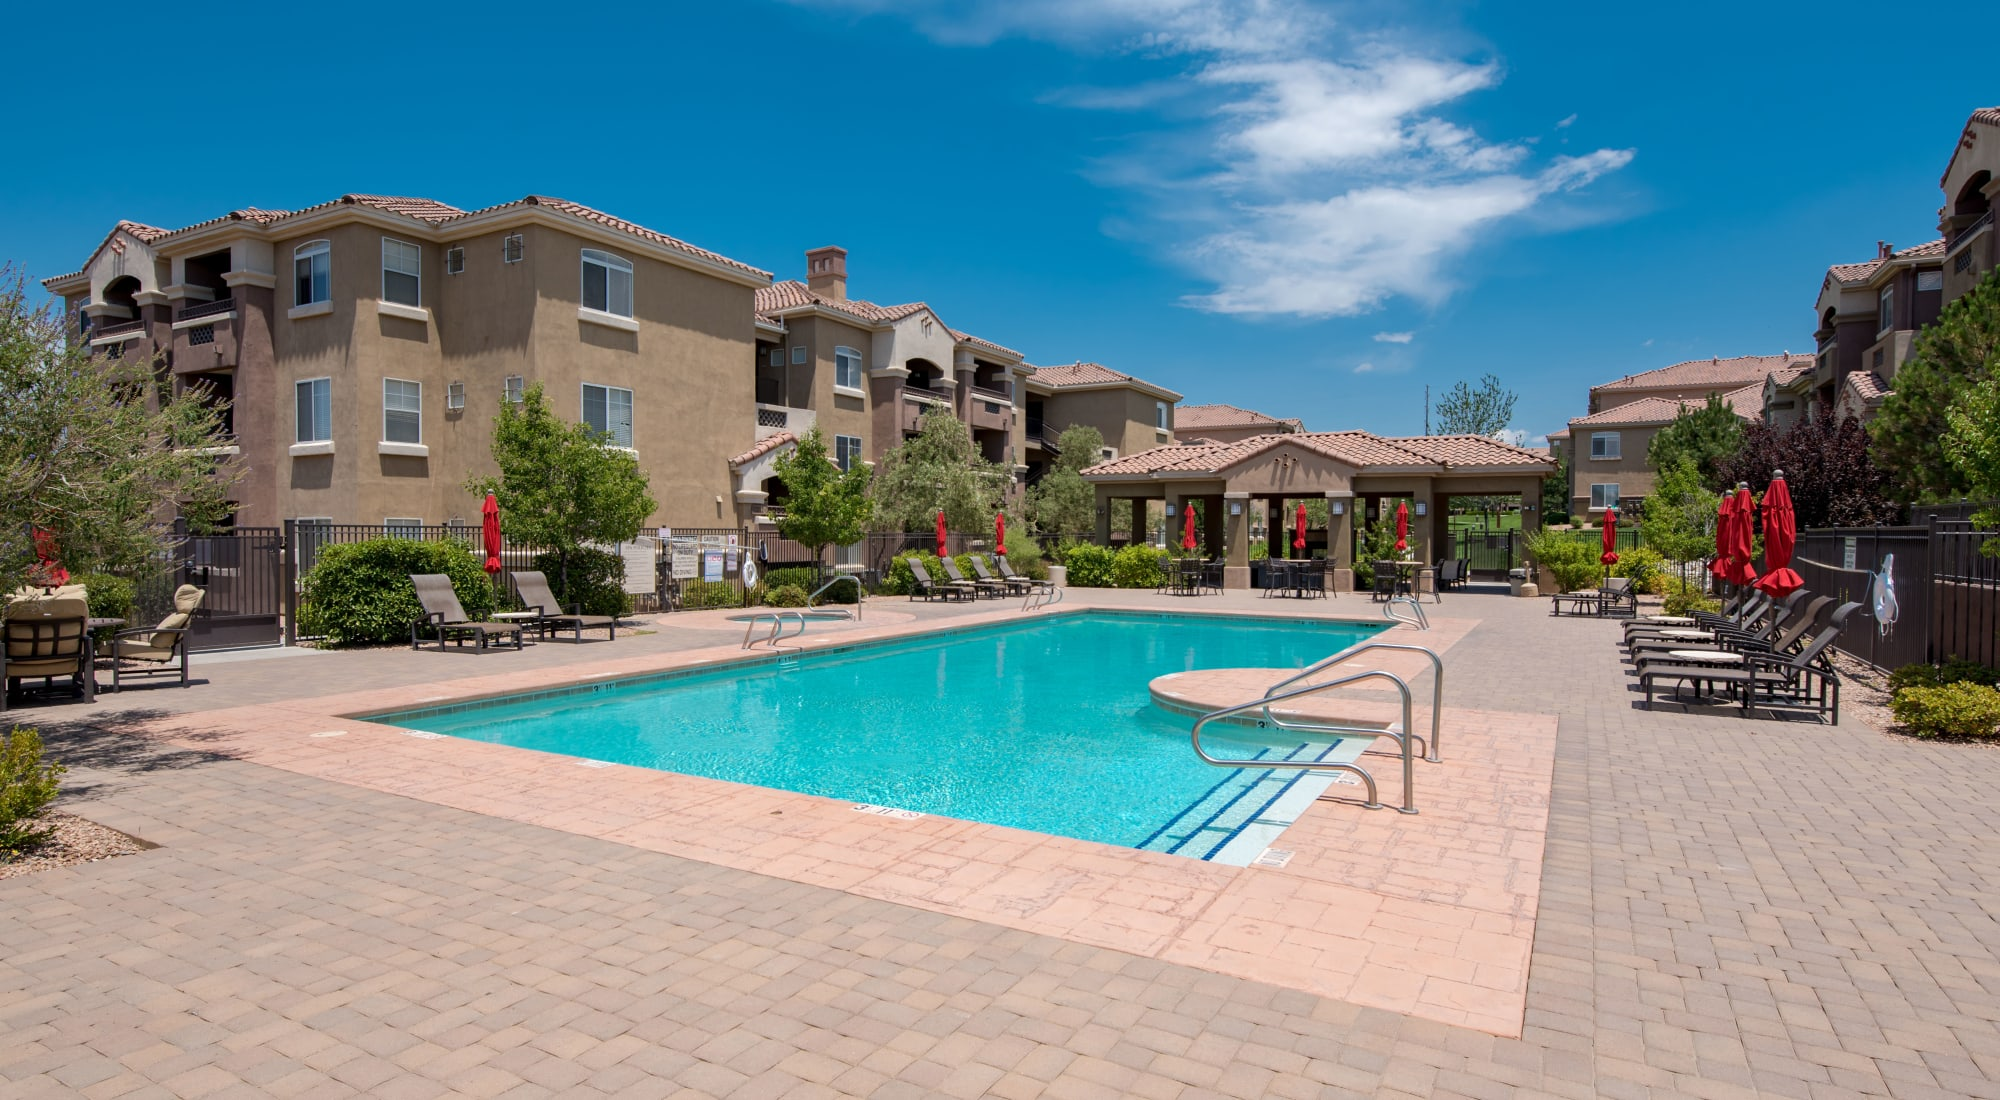 Apply to live at Broadstone Towne Center in Albuquerque, New Mexico